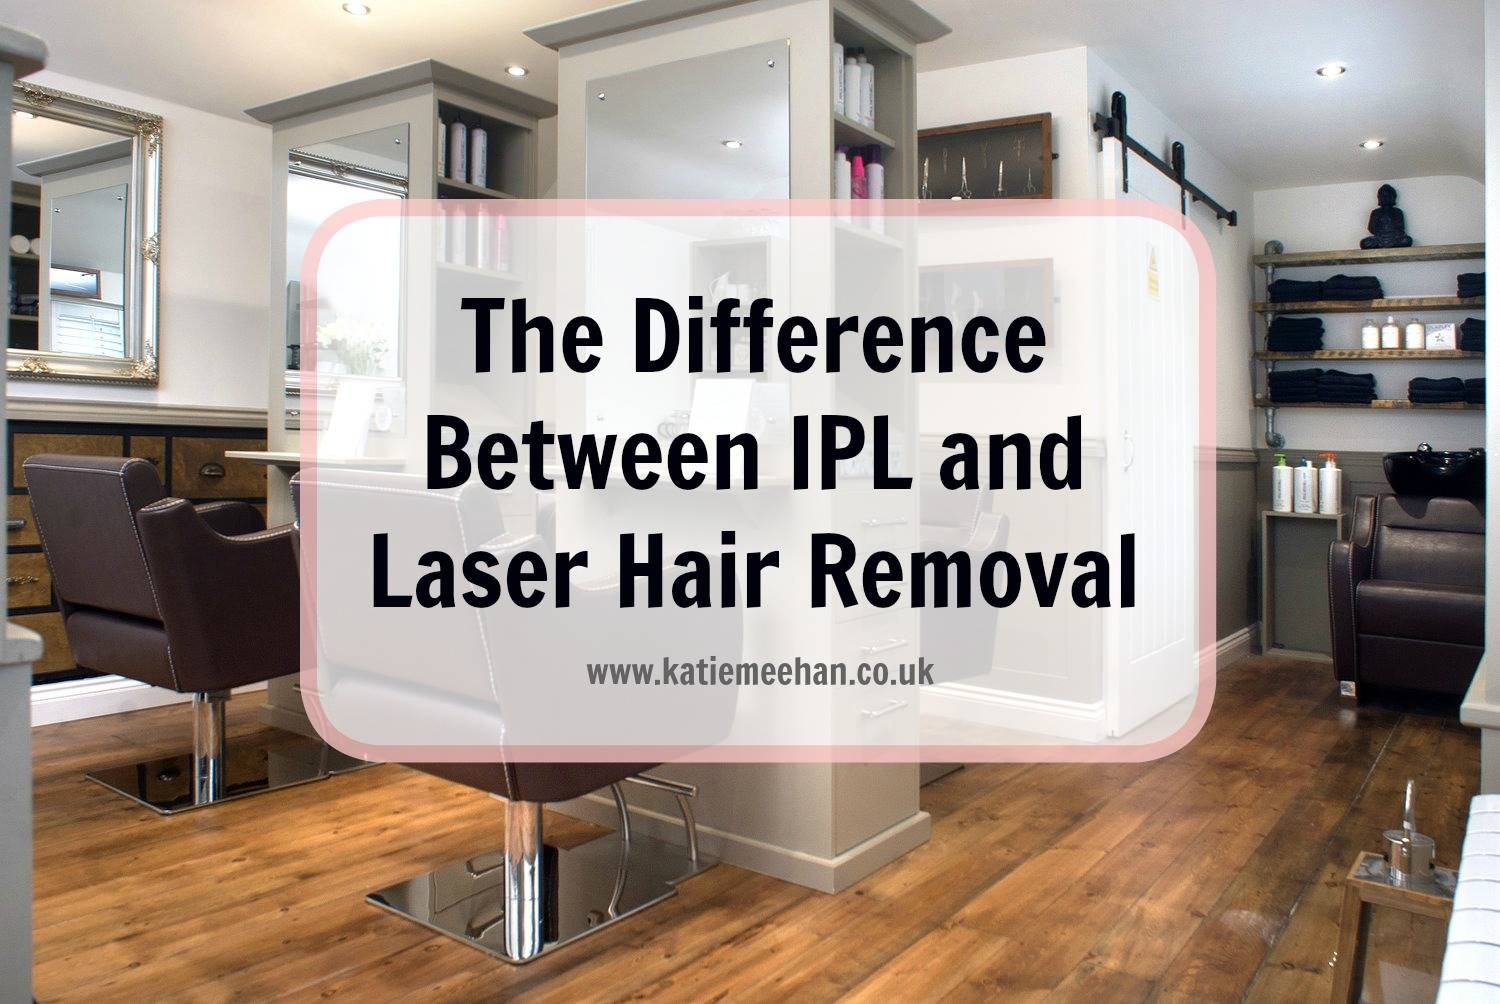 What is the Difference Between IPL (Intense Pulse Light) and Laser Hair Removal?